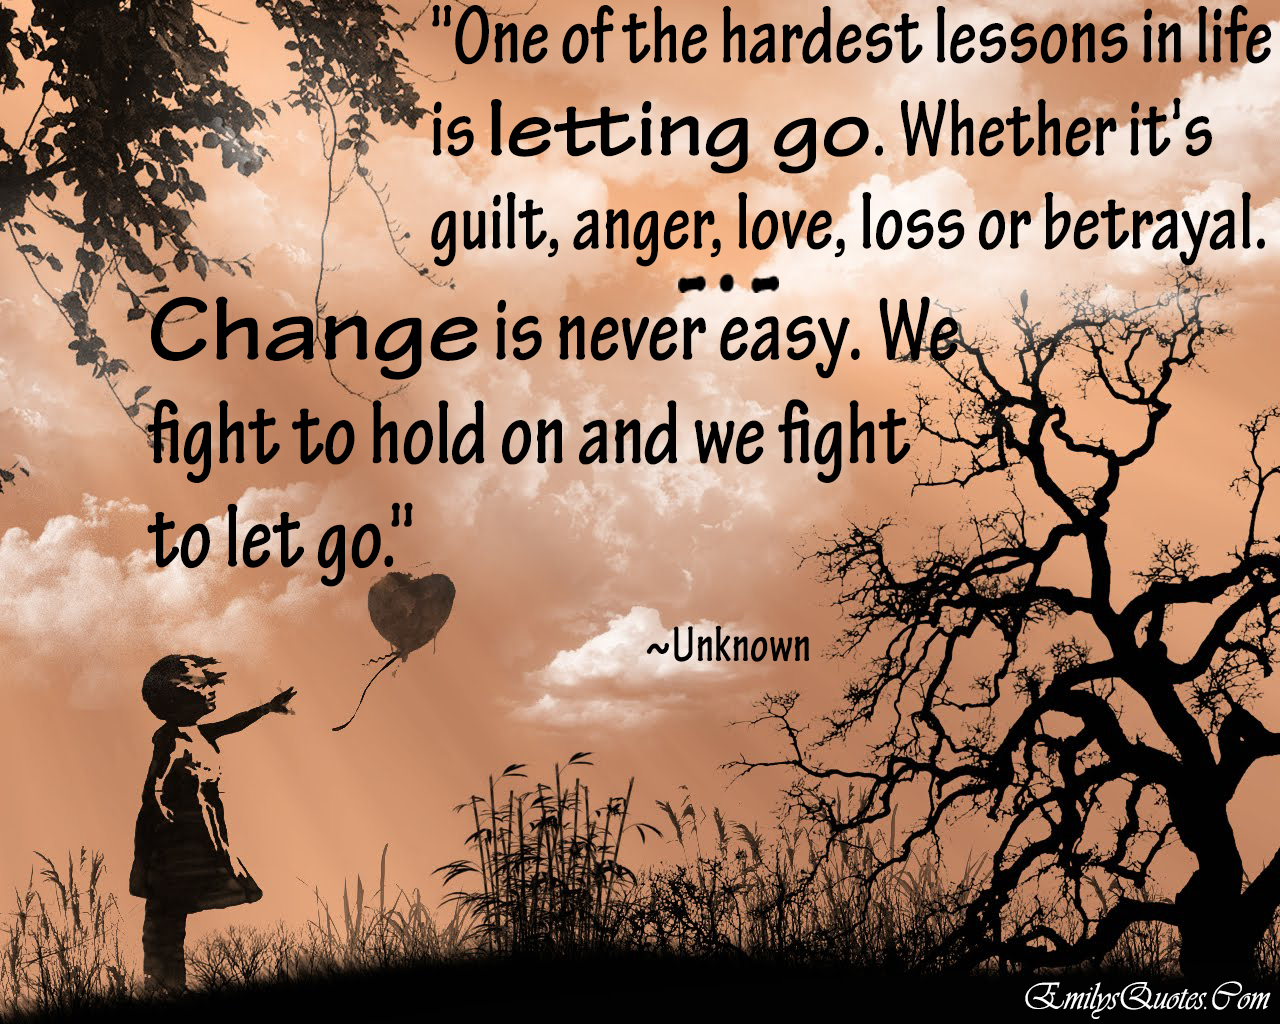 Quotes About Anger And Rage: Letting Go Quotes Death. QuotesGram